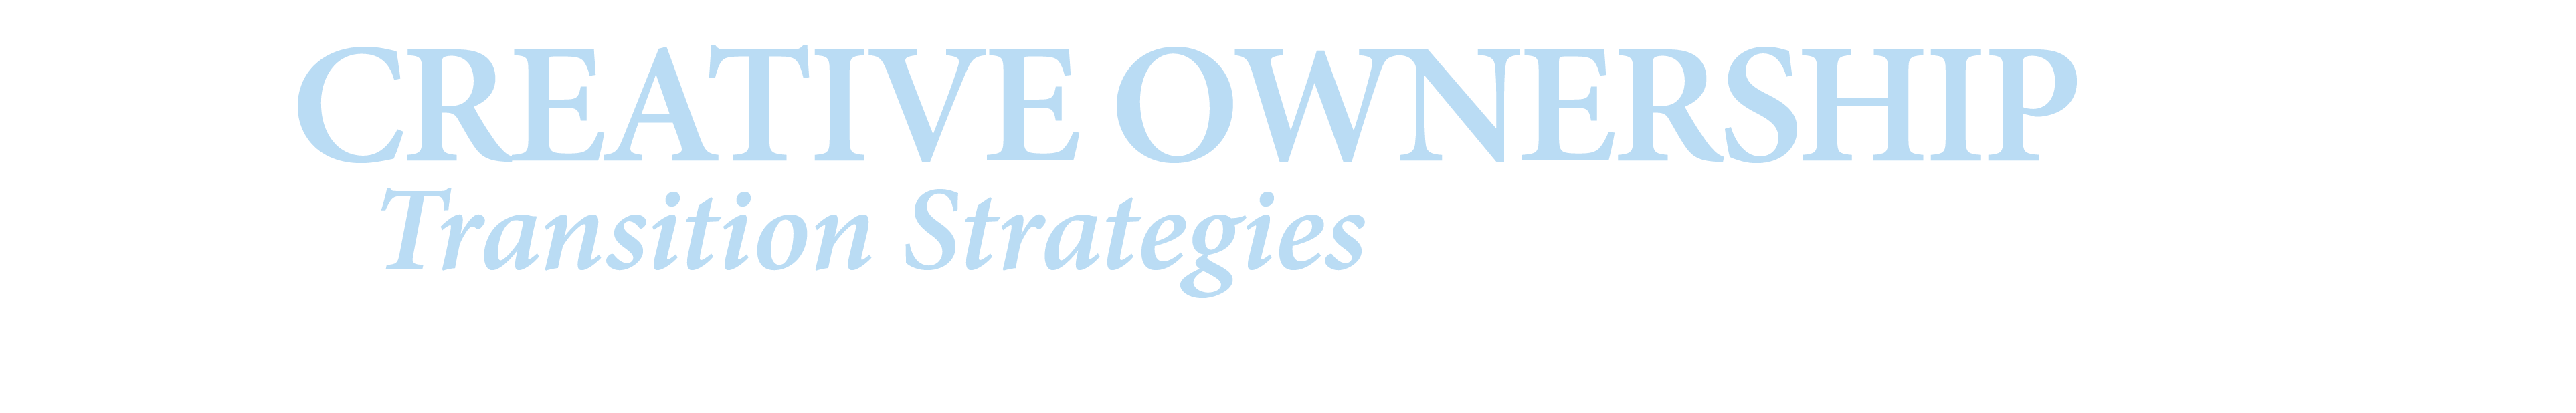 Creative Ownership Transition Strategies